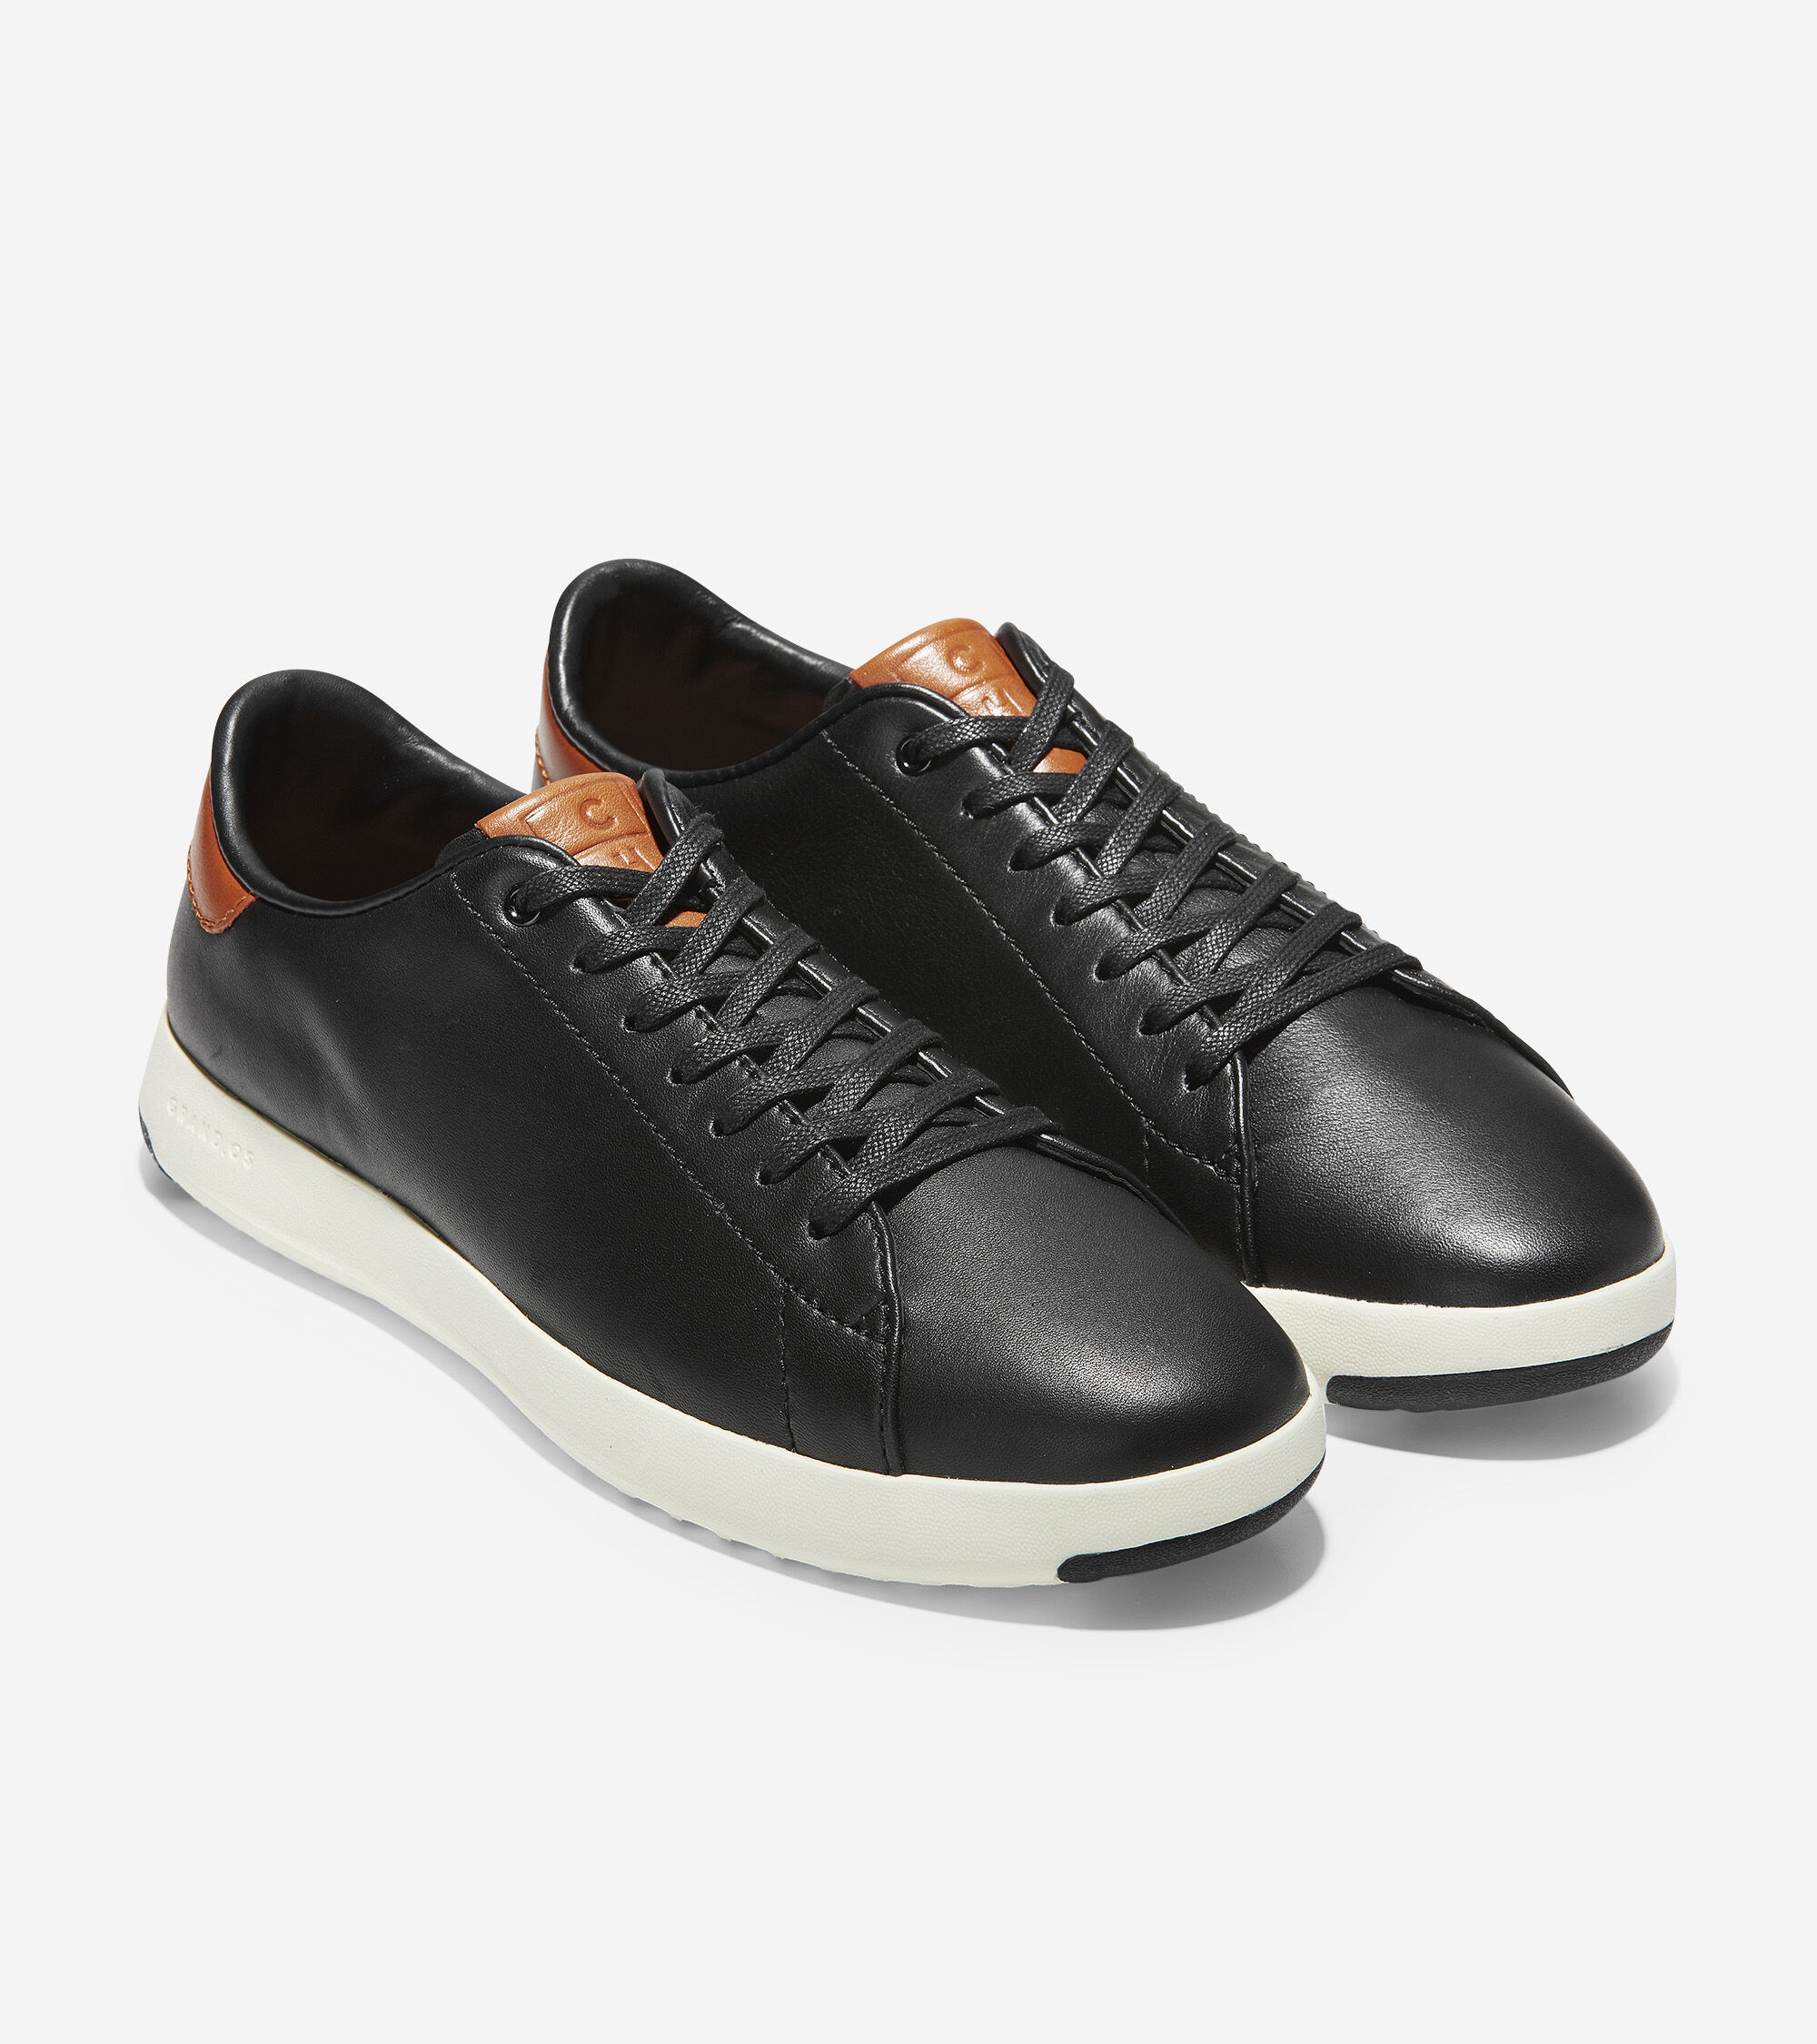 lace-up sock sneakers - Black Cole Haan